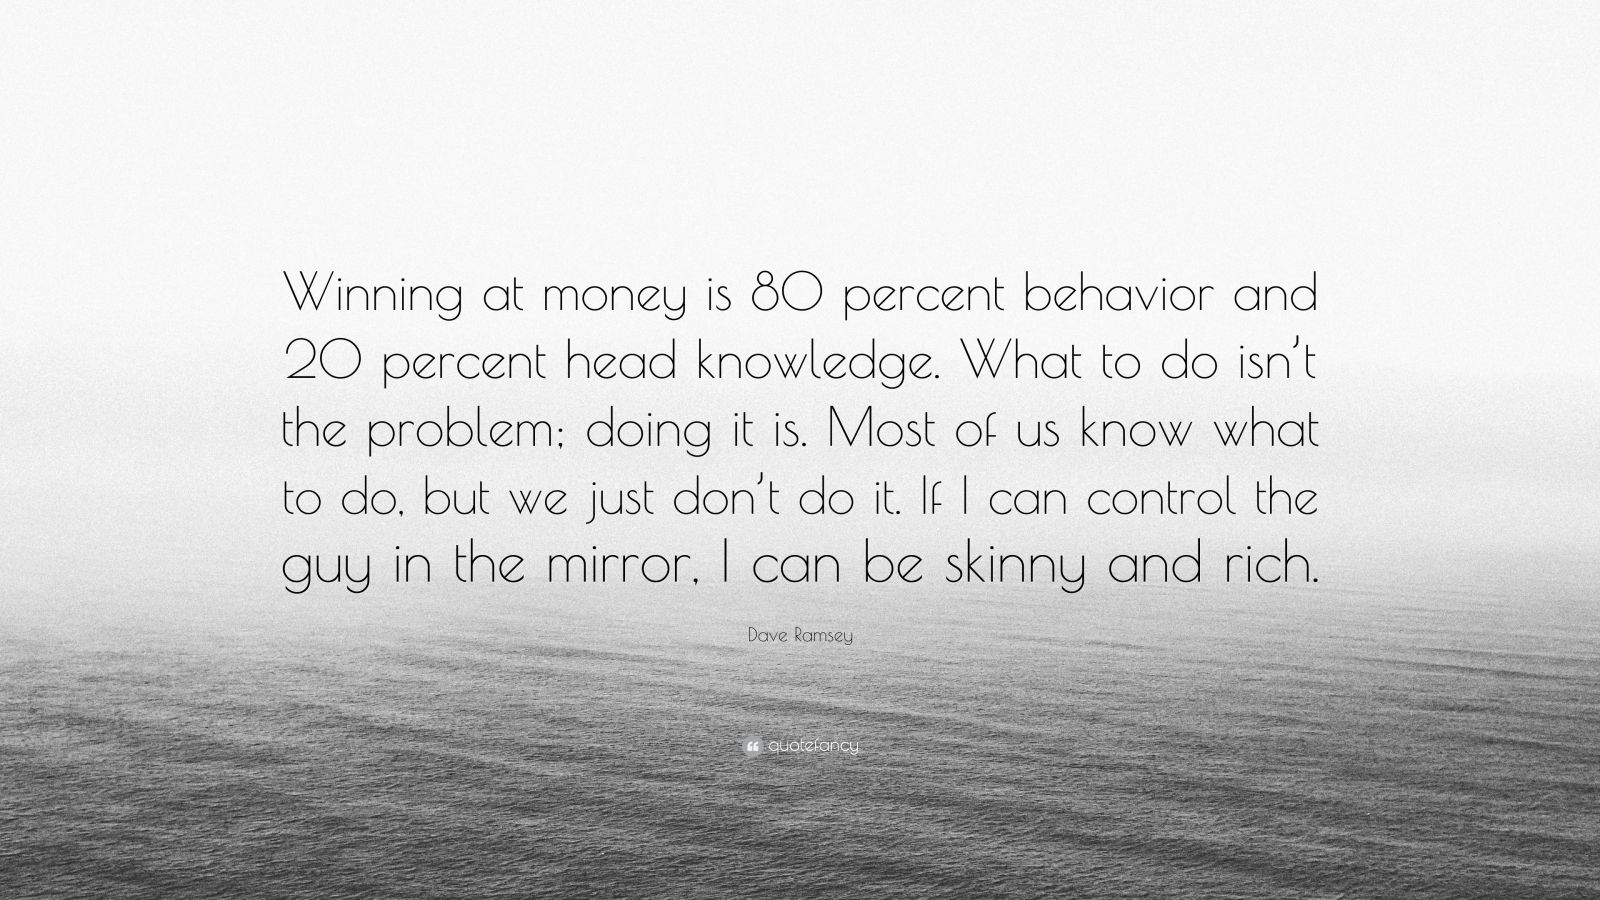 """Dave Ramsey Quote: """"Winning at money is 80 percent behavior and 20 percent head knowledge. What to do isn't the problem; doing it is. Most of us know what to do, but we just don't do it. If I can control the guy in the mirror, I can be skinny and rich."""""""